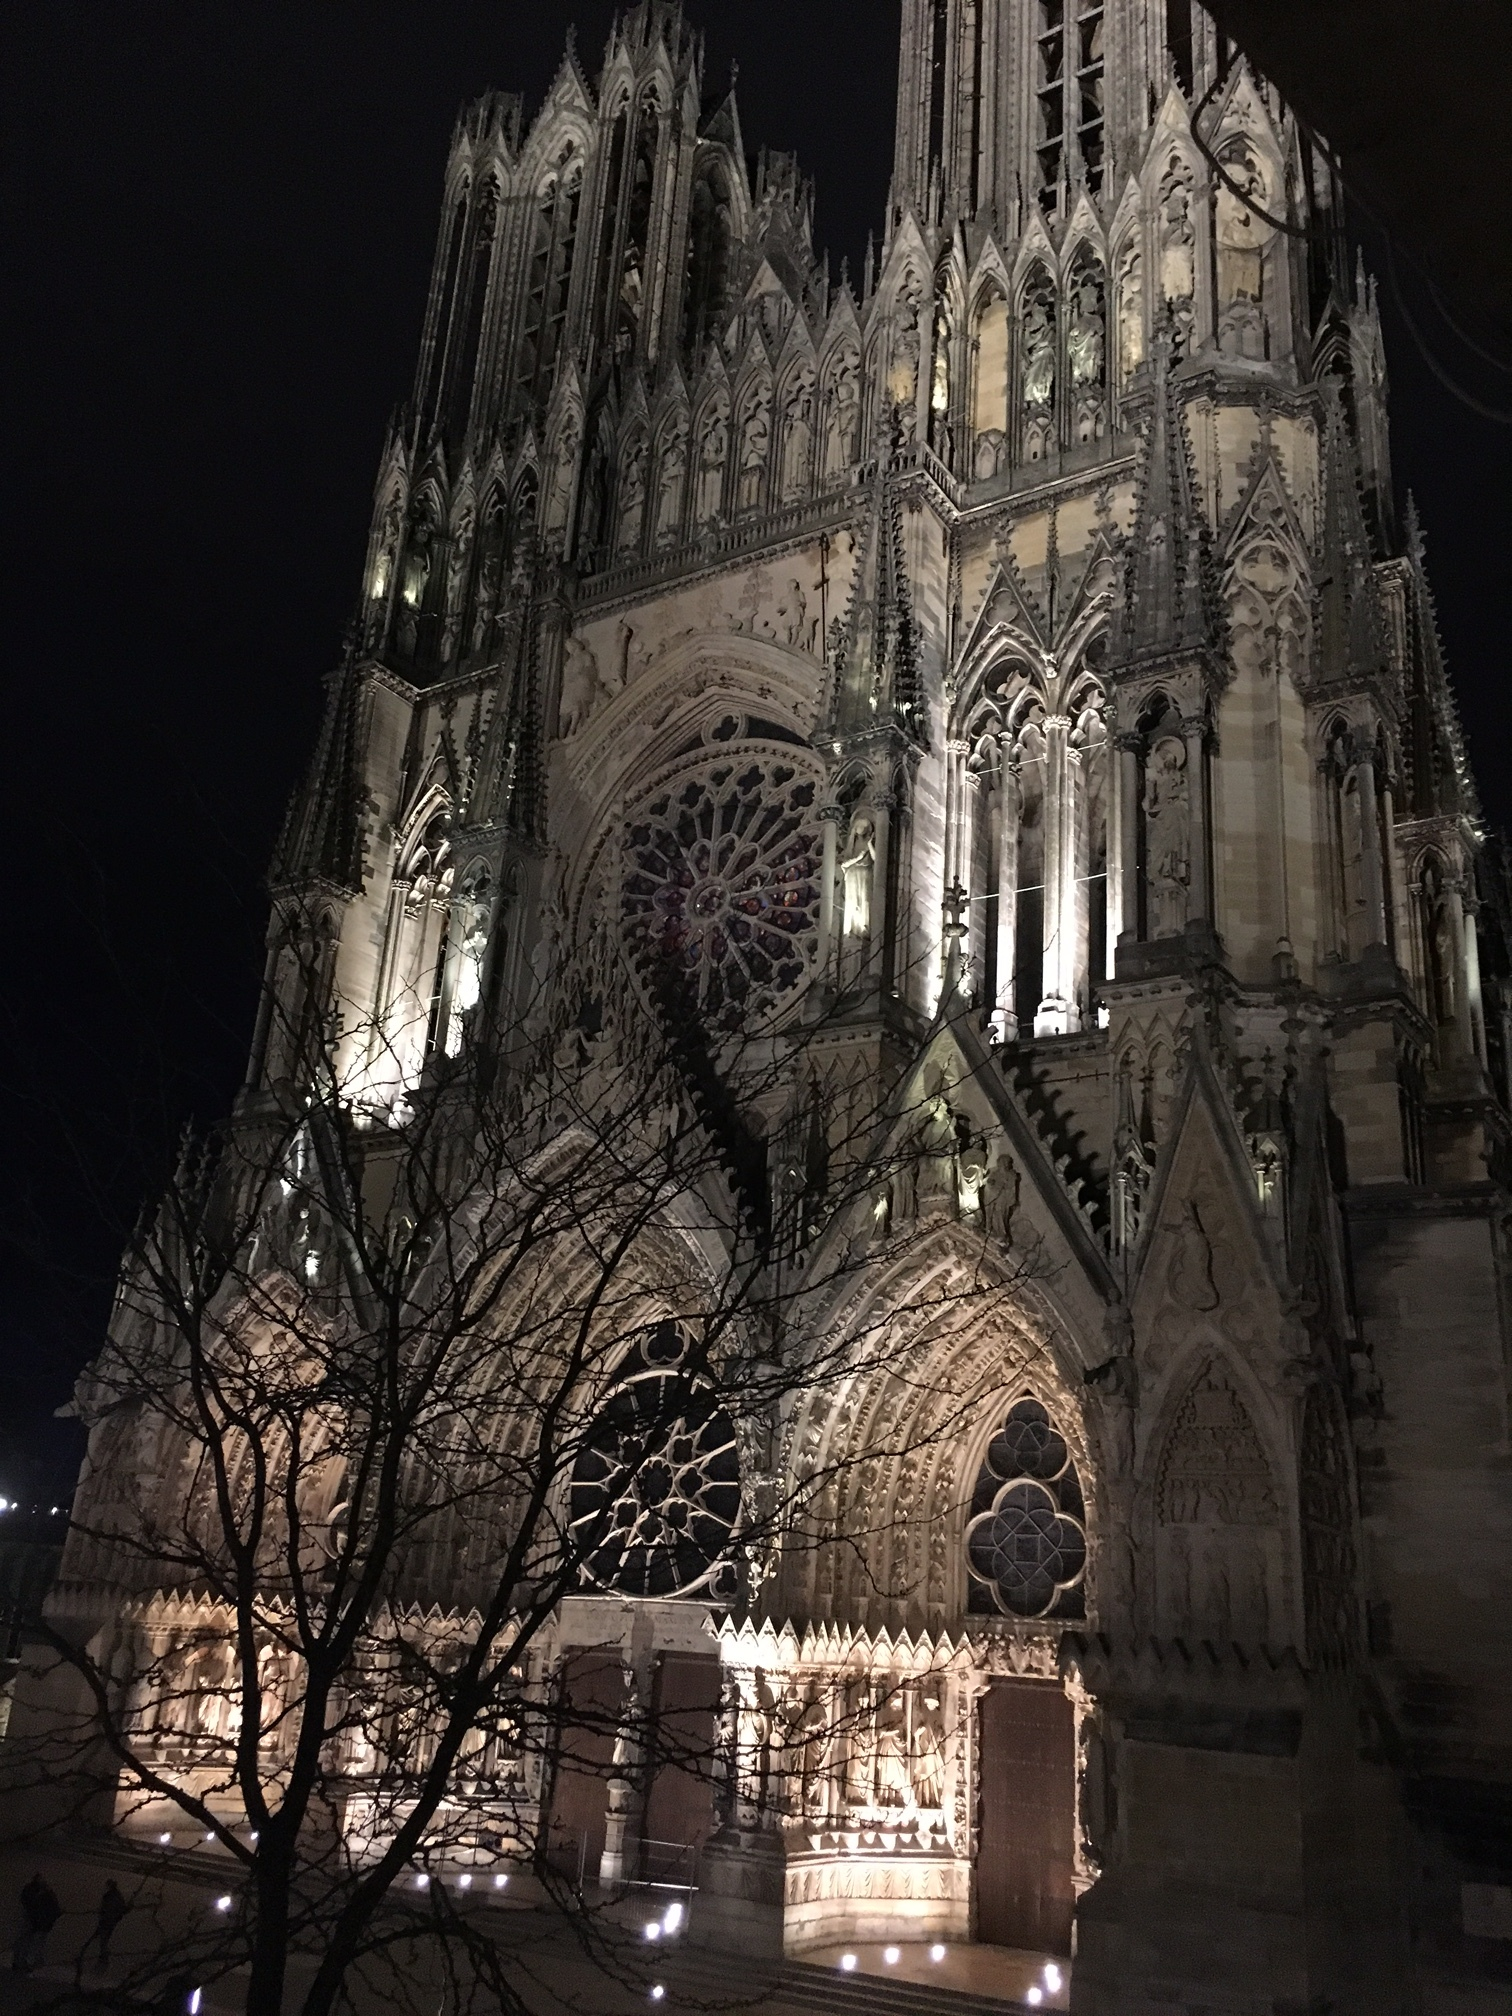 the Reims Cathedral at night